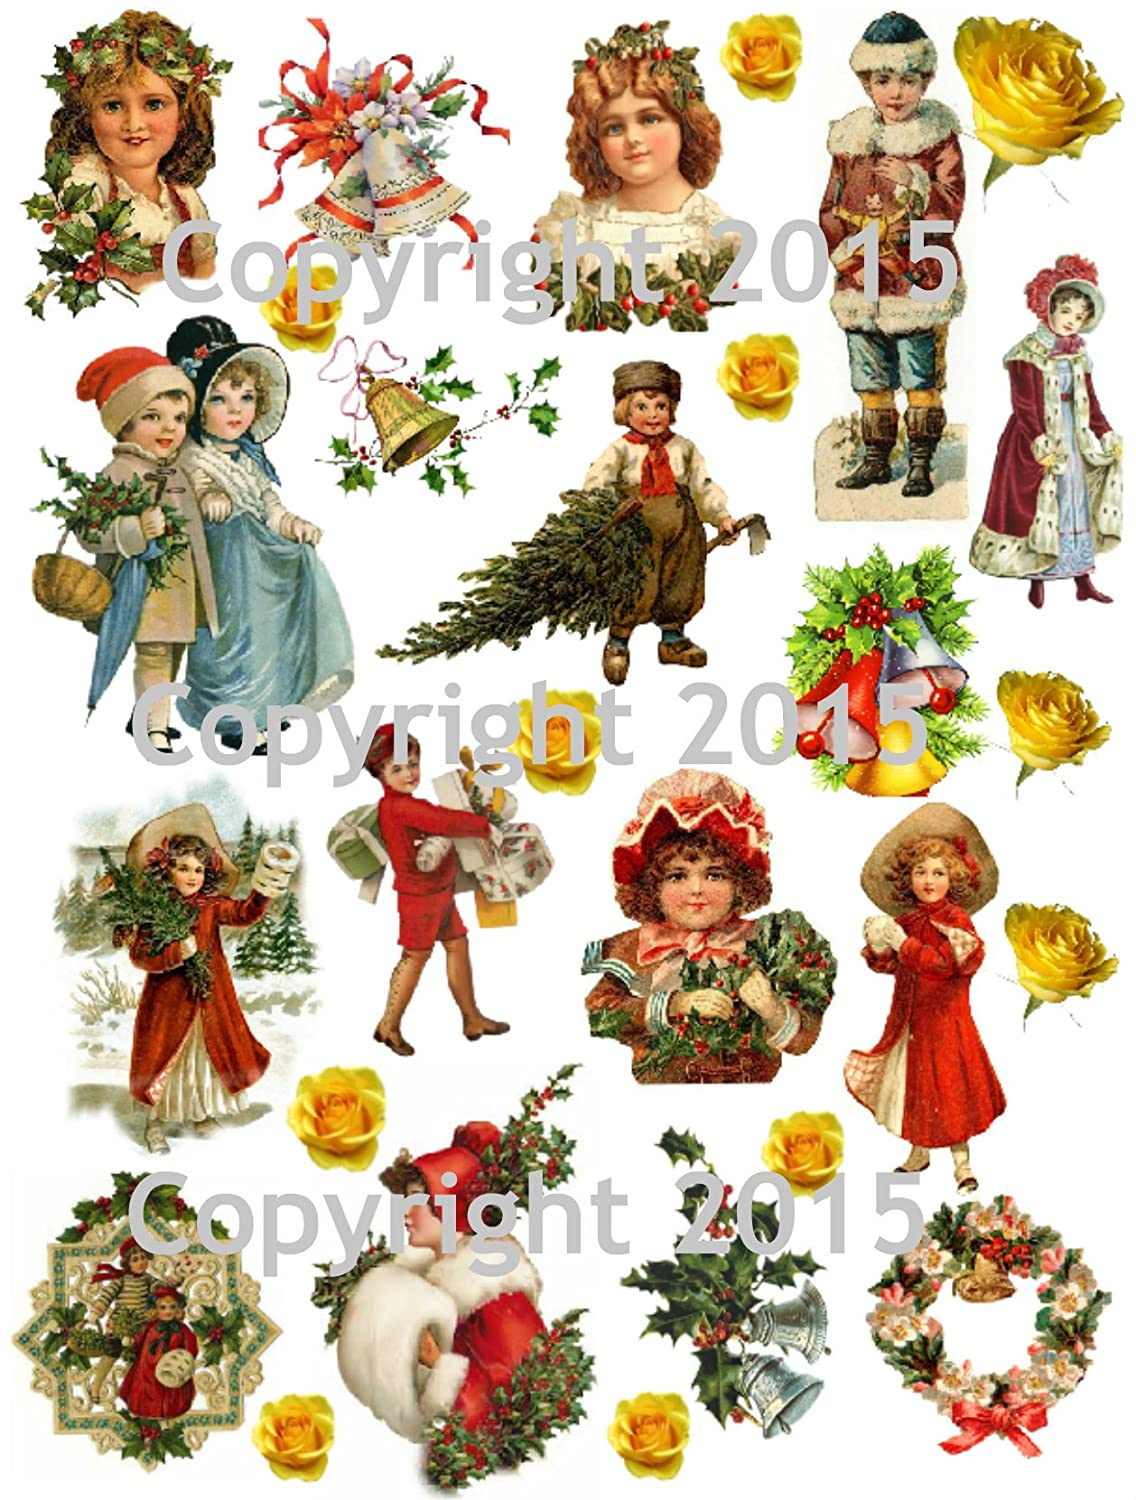 Victorian Vintage Christmas #103 Printed Collage Sheet 8.5 x 11 Paper Moon Media